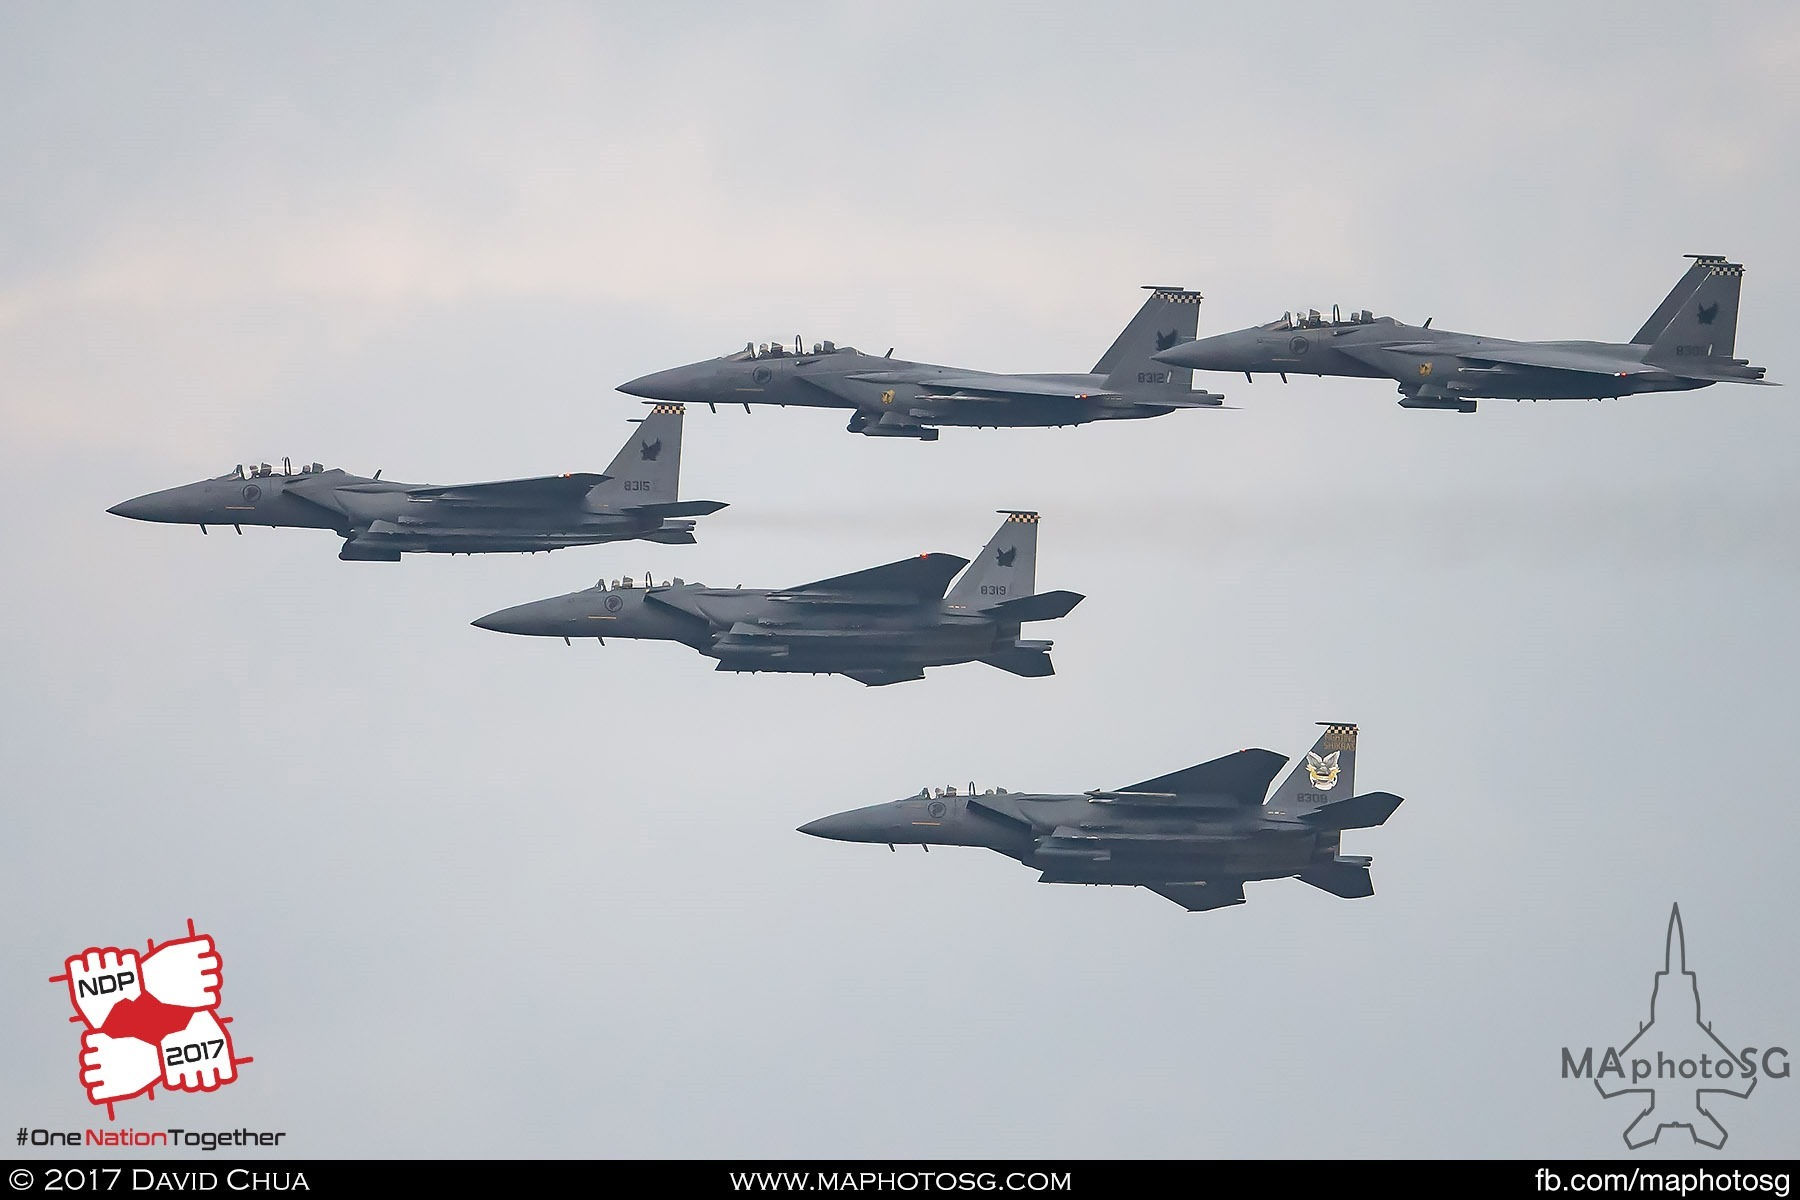 21. Five F-15SG Strike Eagles from 149 Squadron flies in formation to perform the Salute to the Nation bomb burst.